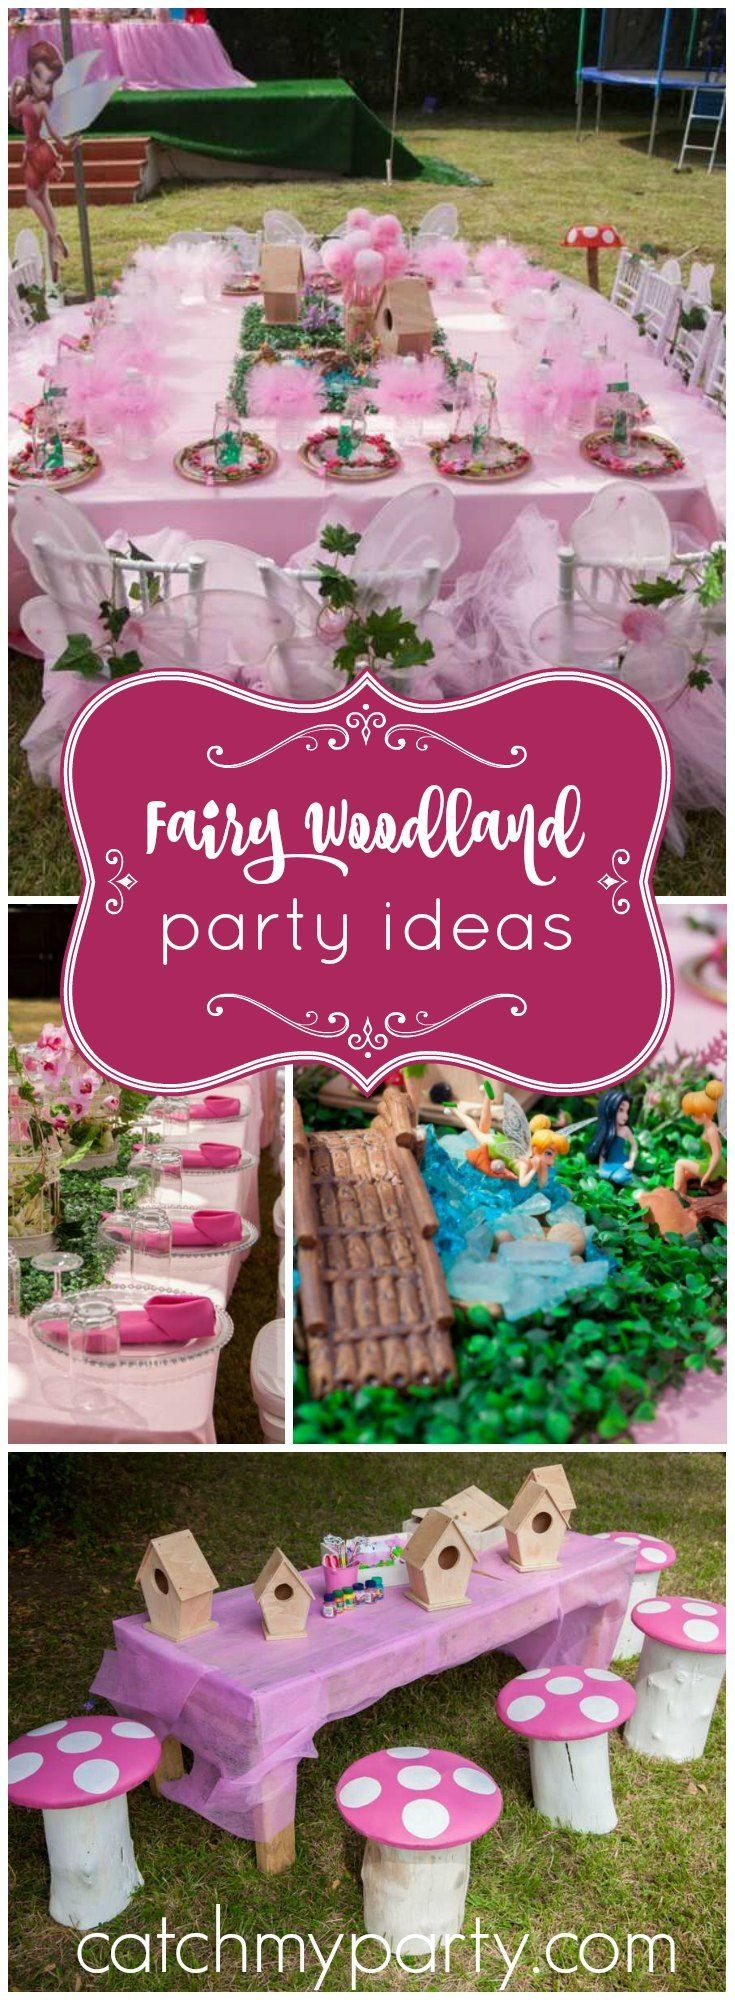 Loving this whimsical fairy garden party with fun activities for the guests! See more party ideas at Catchmyparty.com!